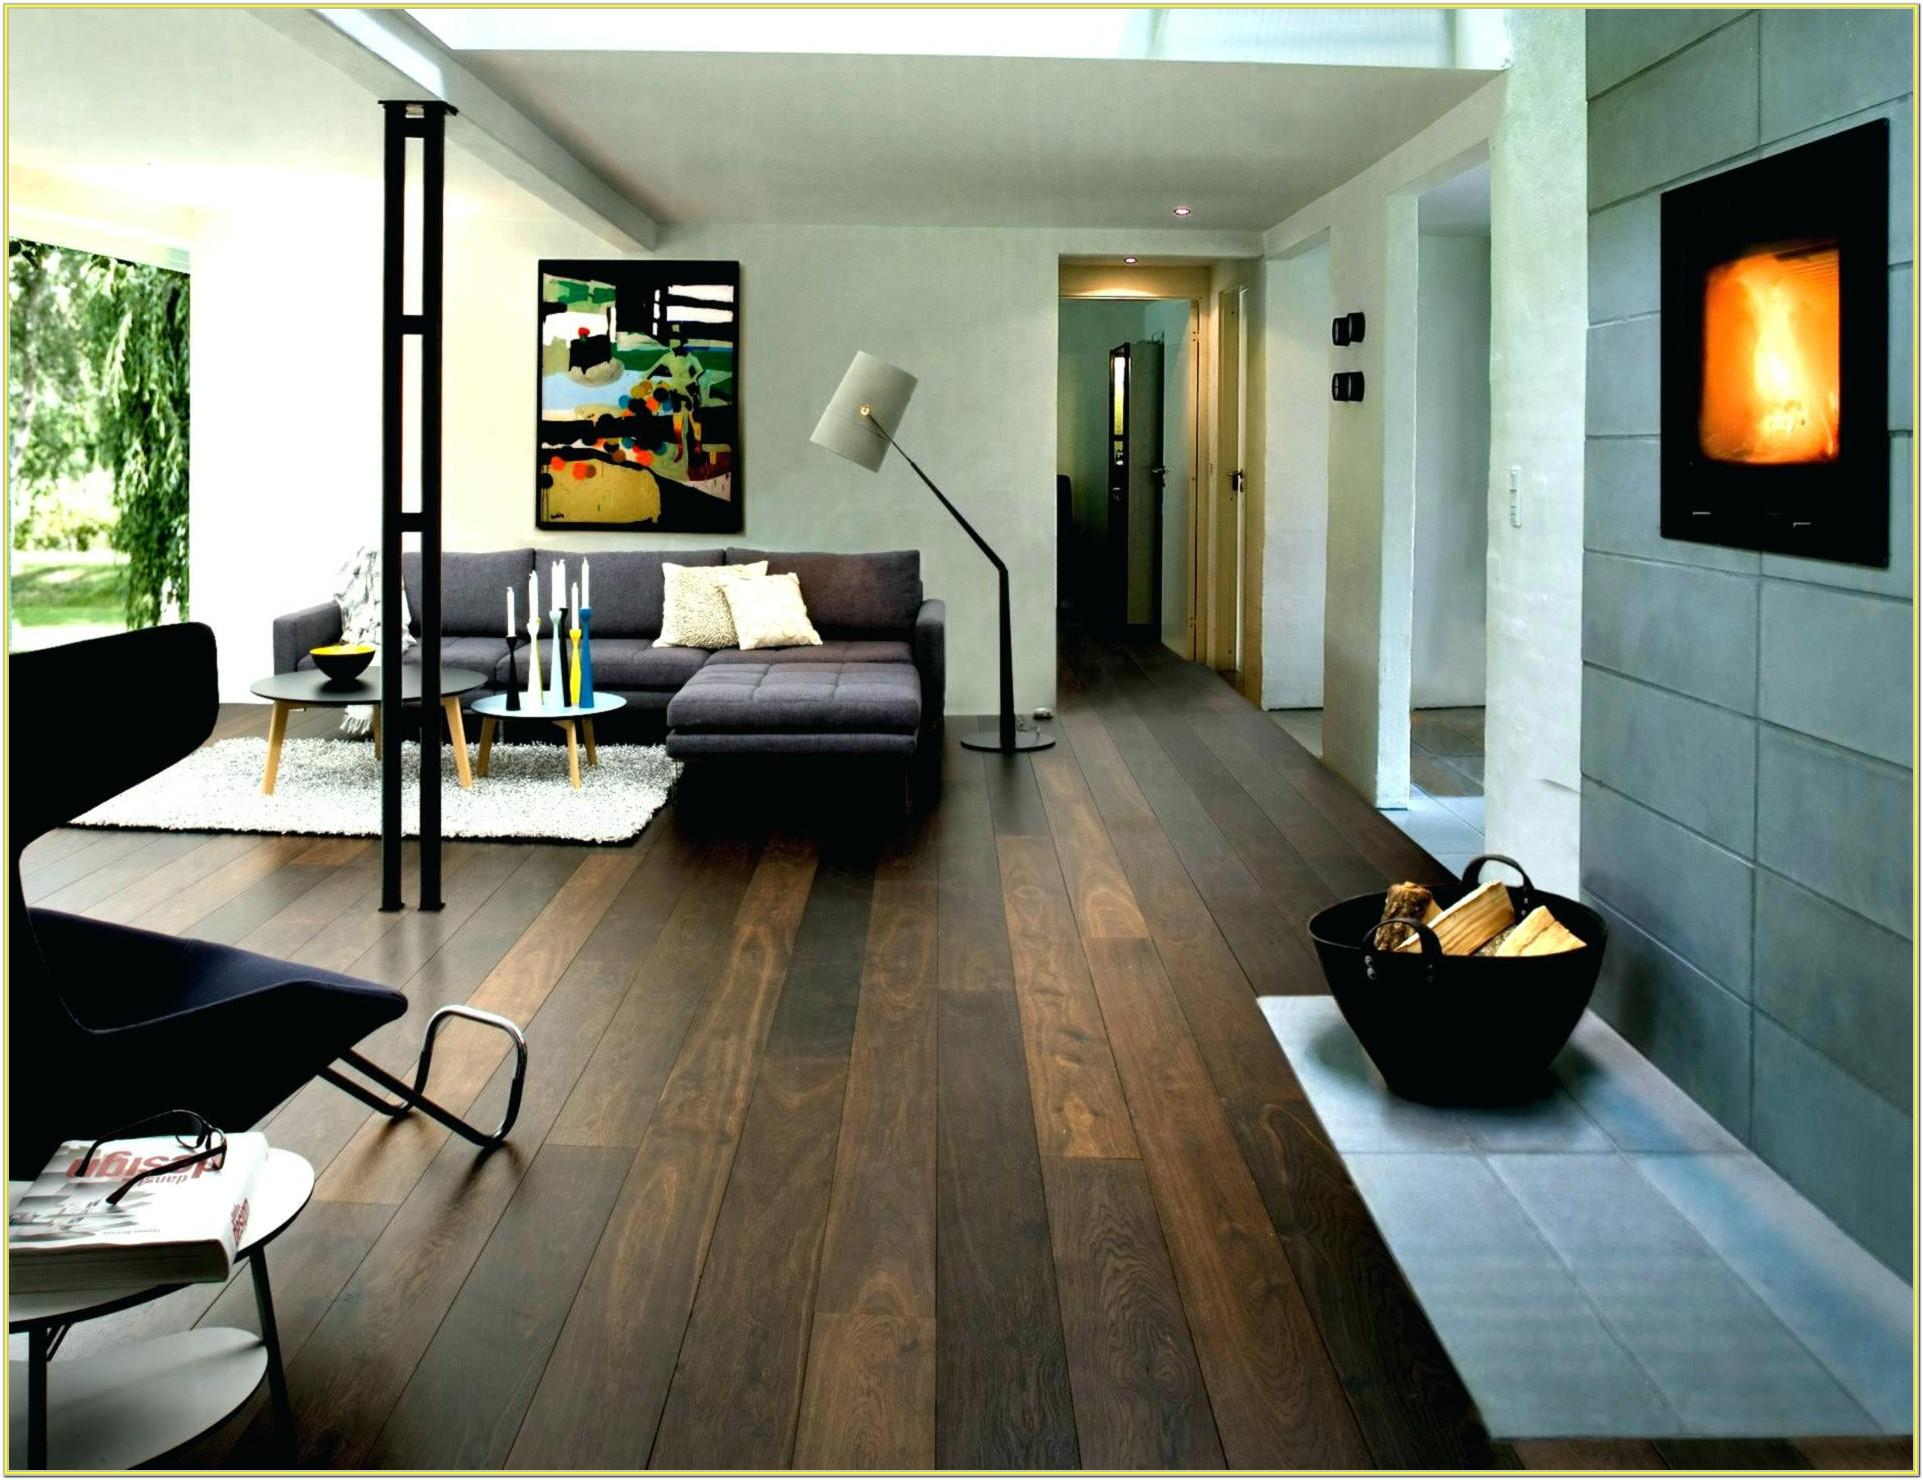 How To Decorate A Living Room With Wood Floors